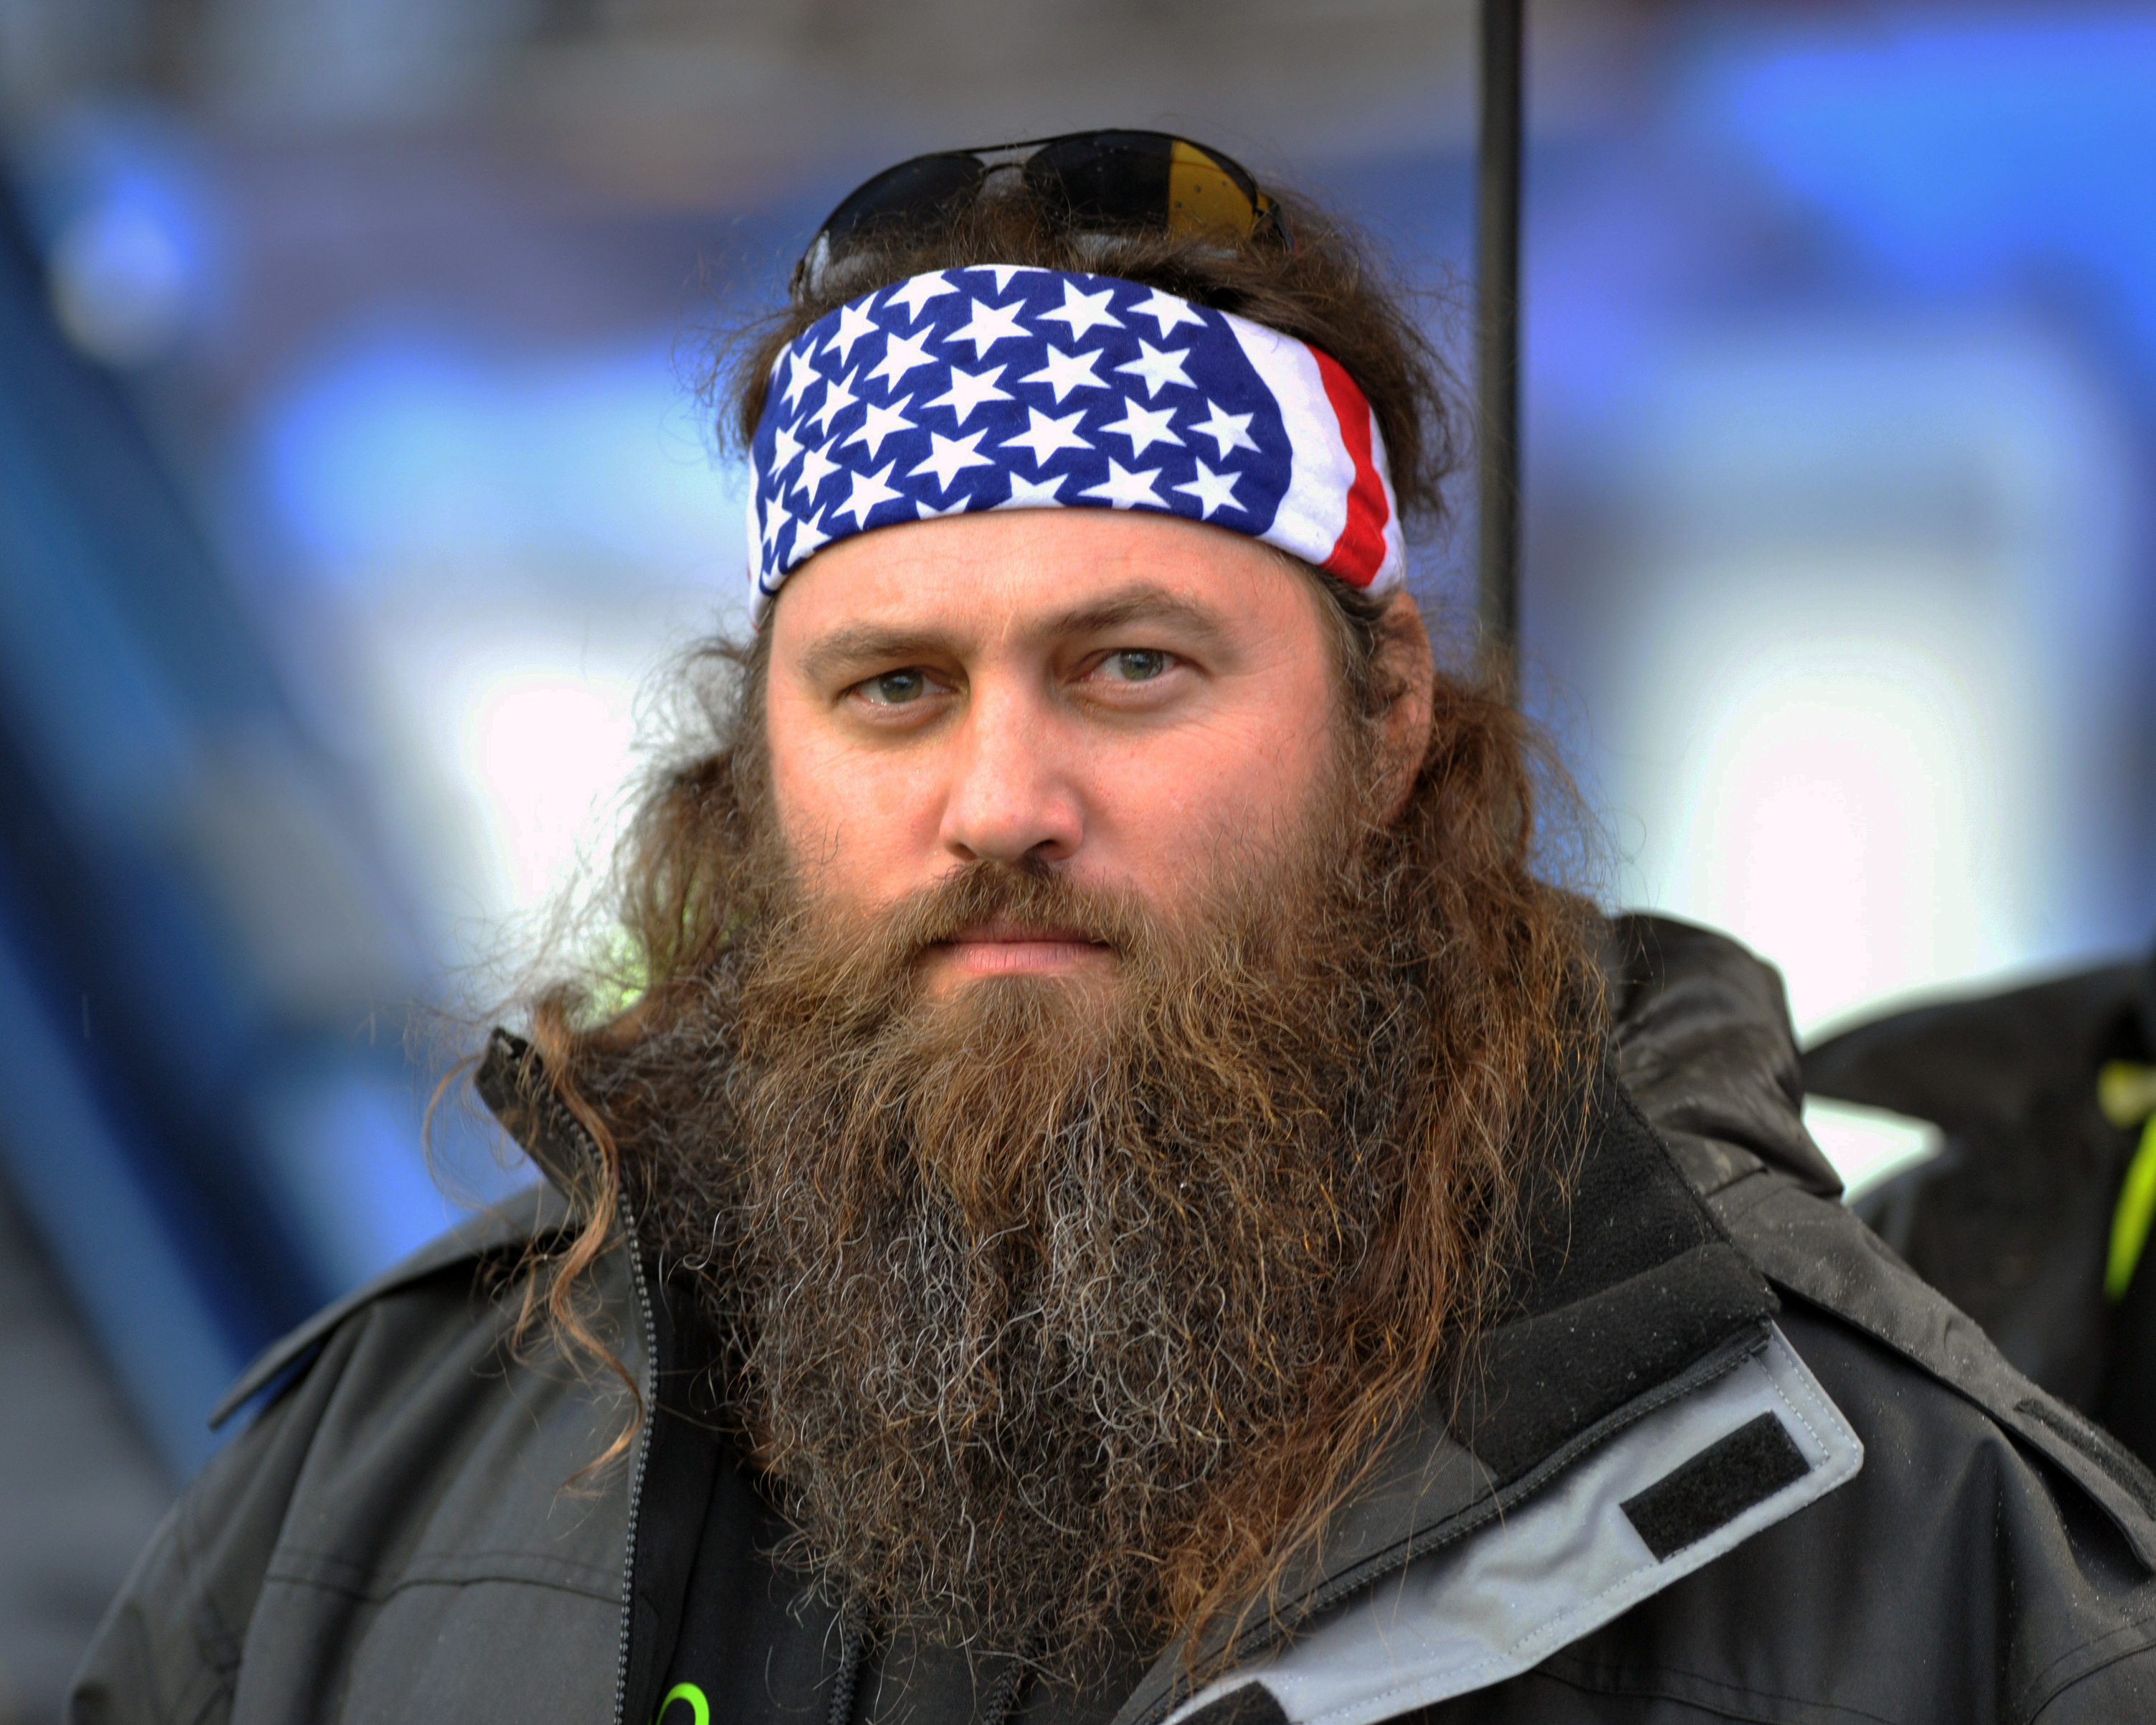 Willie is wearing a bandana with the American Flag painted on it. He has a bushy beard